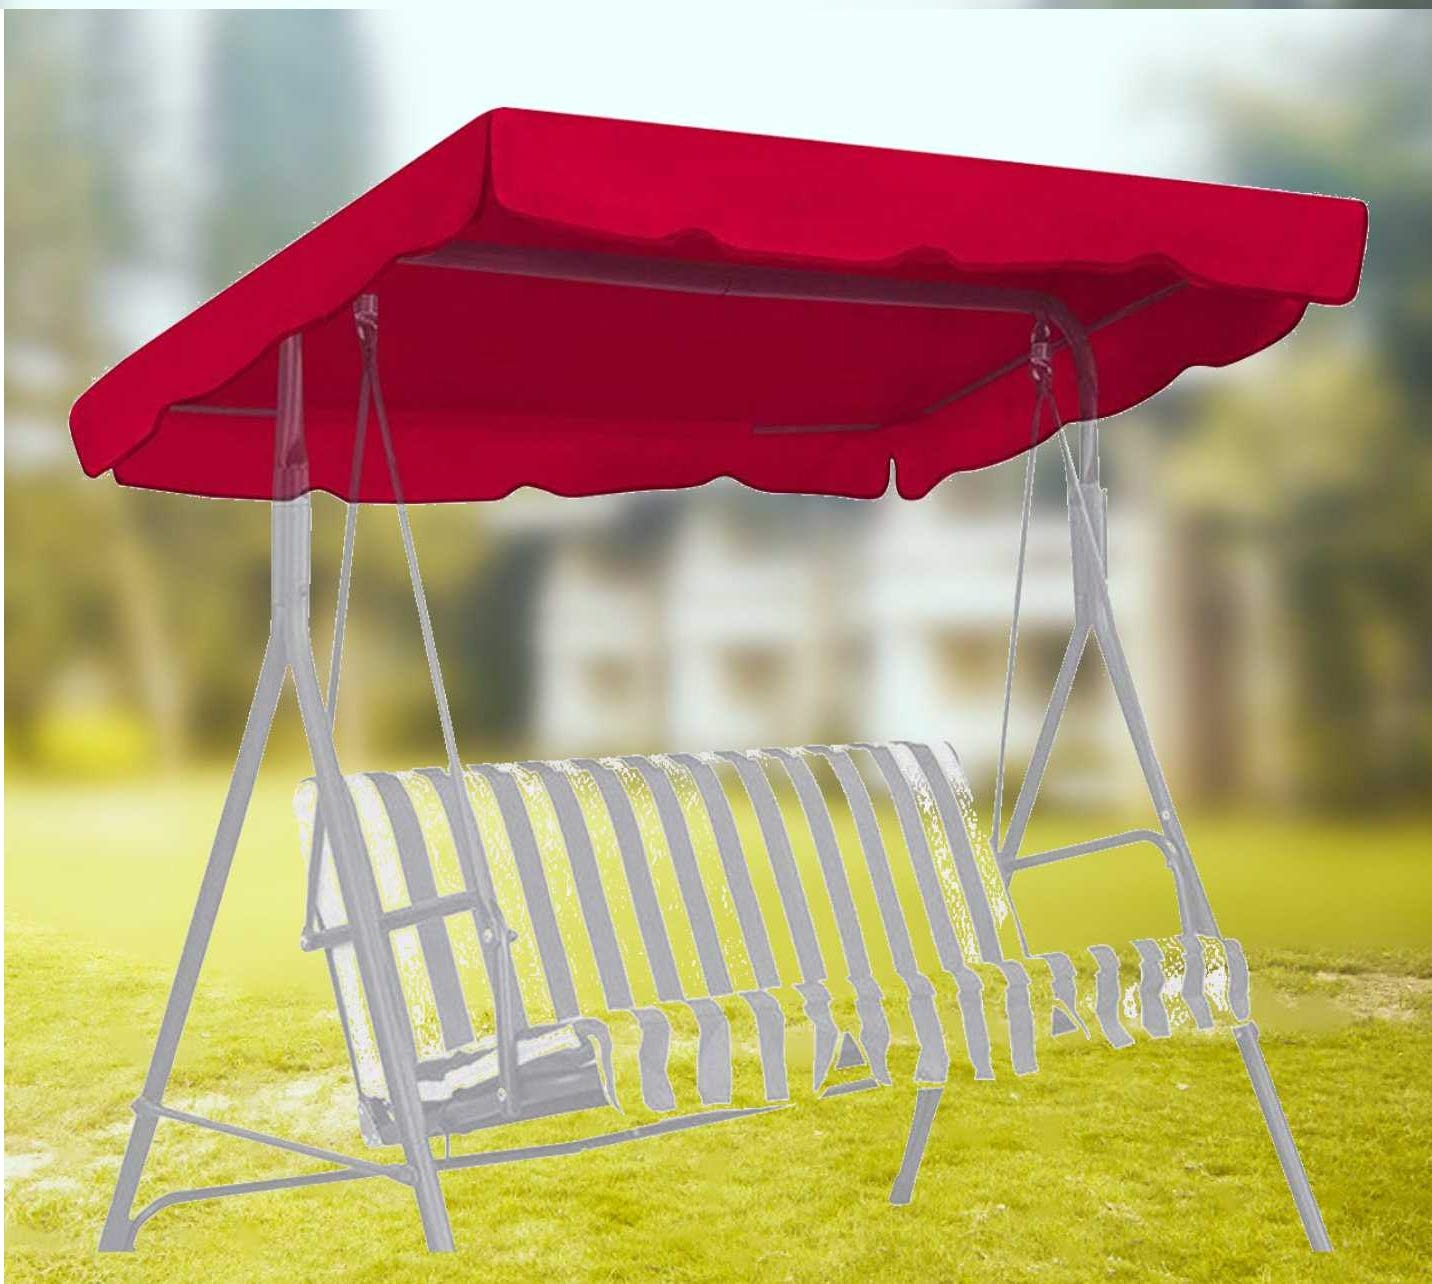 3 Seater Swings With Frame And Canopy Throughout Popular Skyfiree Outdoor Swing Canopy Replacement Top Cover 75x52 Inches 3 Seater Waterproof 600d Polyester Replacement Canopy Uv Block Garden Outdoor Porch (View 8 of 30)